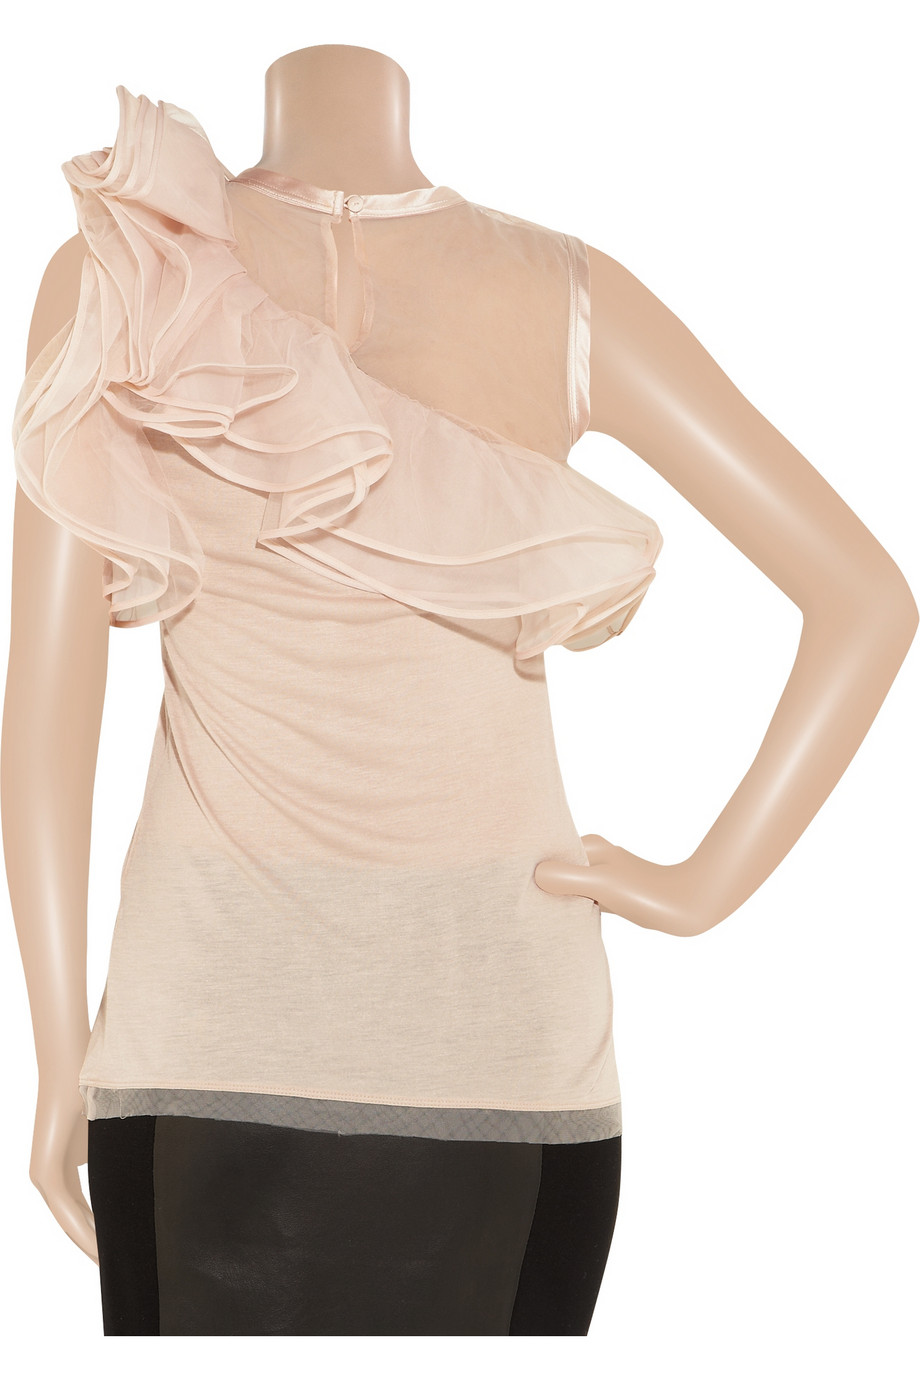 Nada Mobile App >> Lyst - Valentino Jersey and Ruffled Tulle Top in Pink